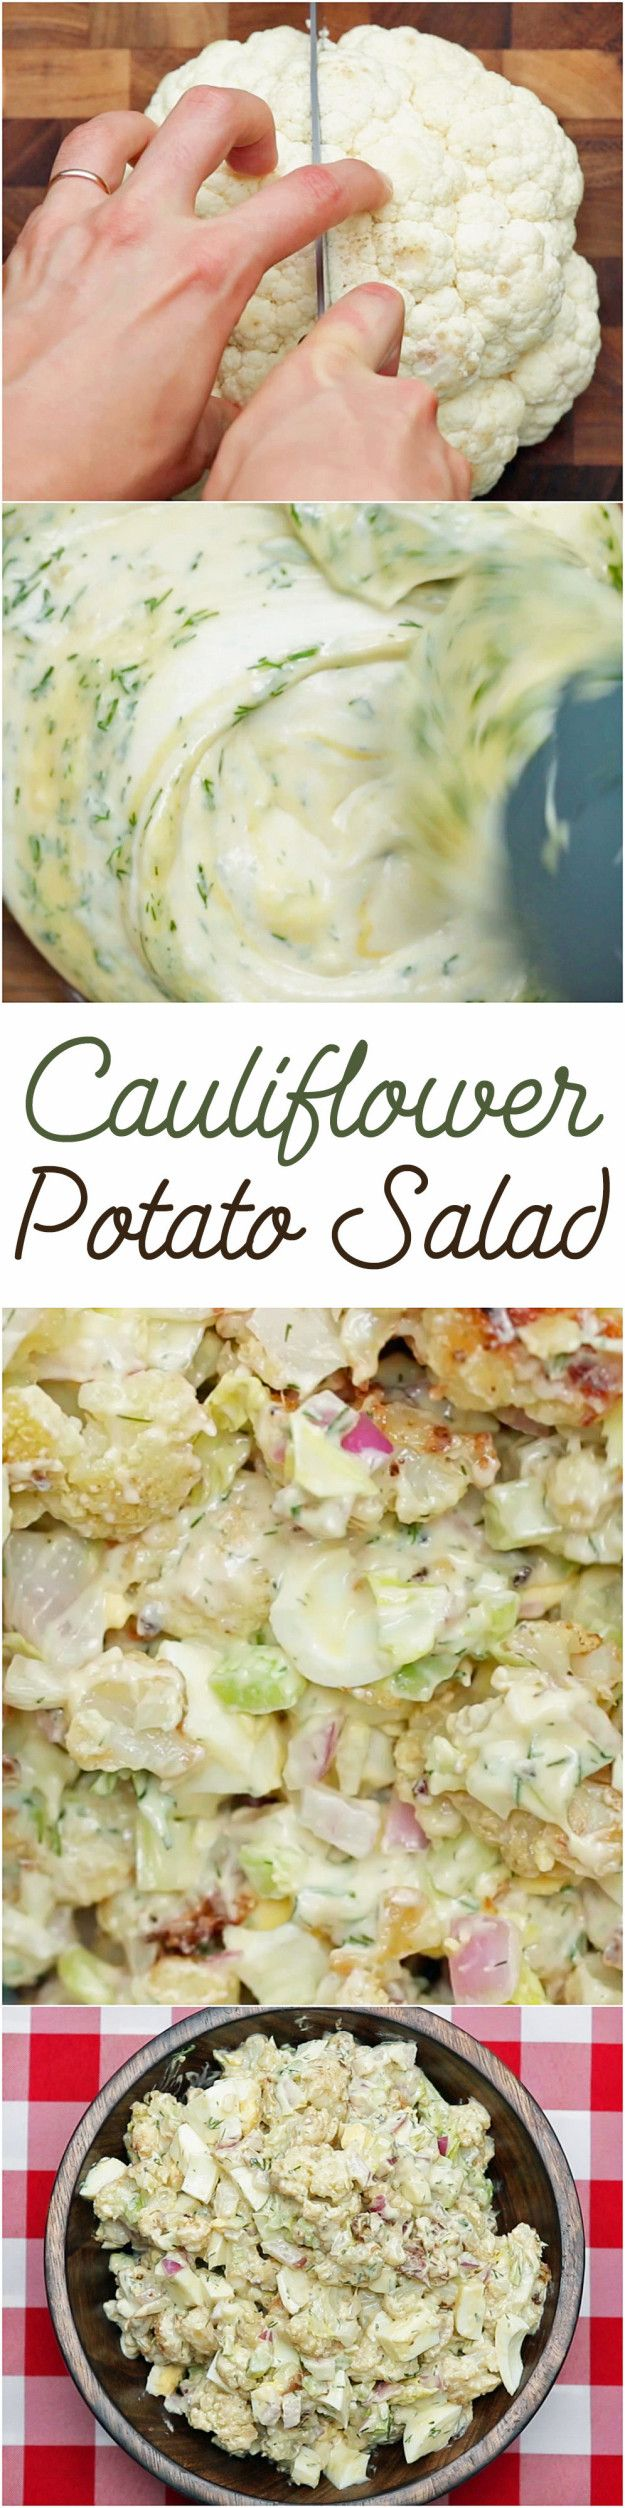 Cauliflower Potato Salad Make vegan: Coconut milk yogurt Replace eggs with avocado and/or garbanzos with namakala salt